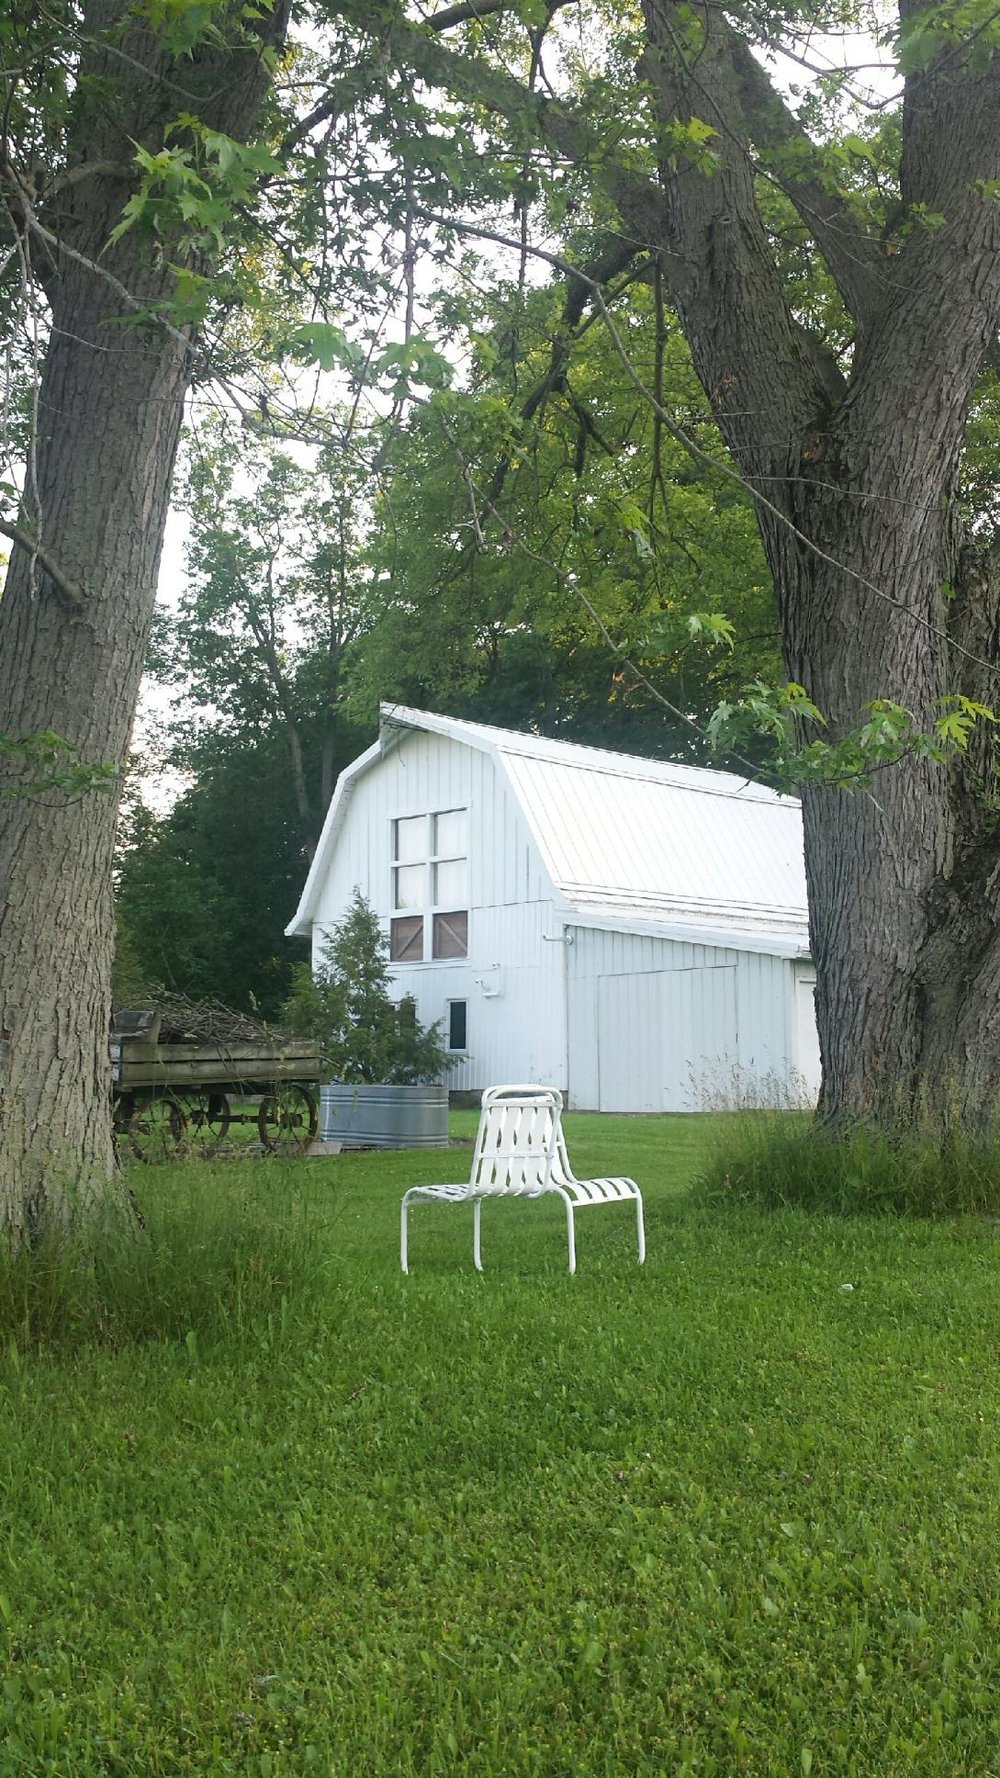 This barn is on the property where our group music-making will take place.